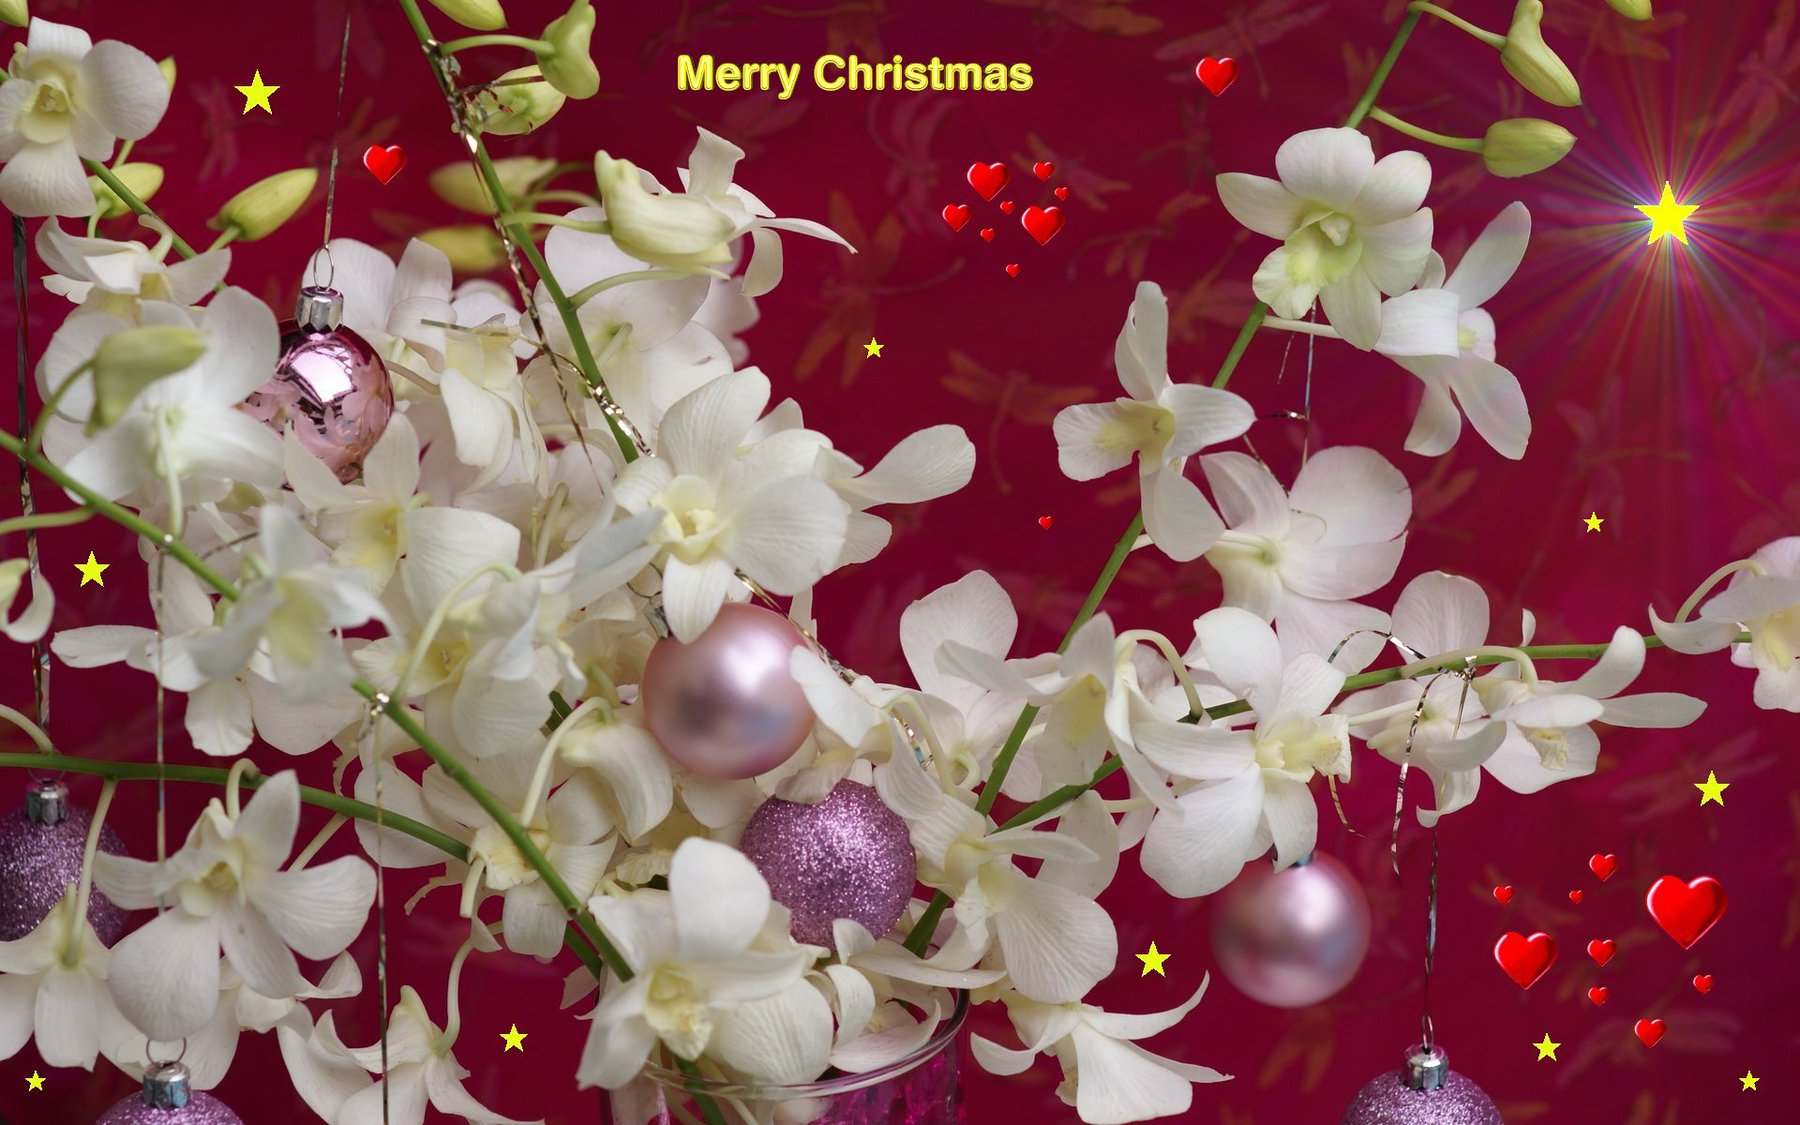 Christmas flowers pictures free image freeuse library Free Christmas Flower wallpaper Wallpapers - HD Wallpapers 88196 image freeuse library